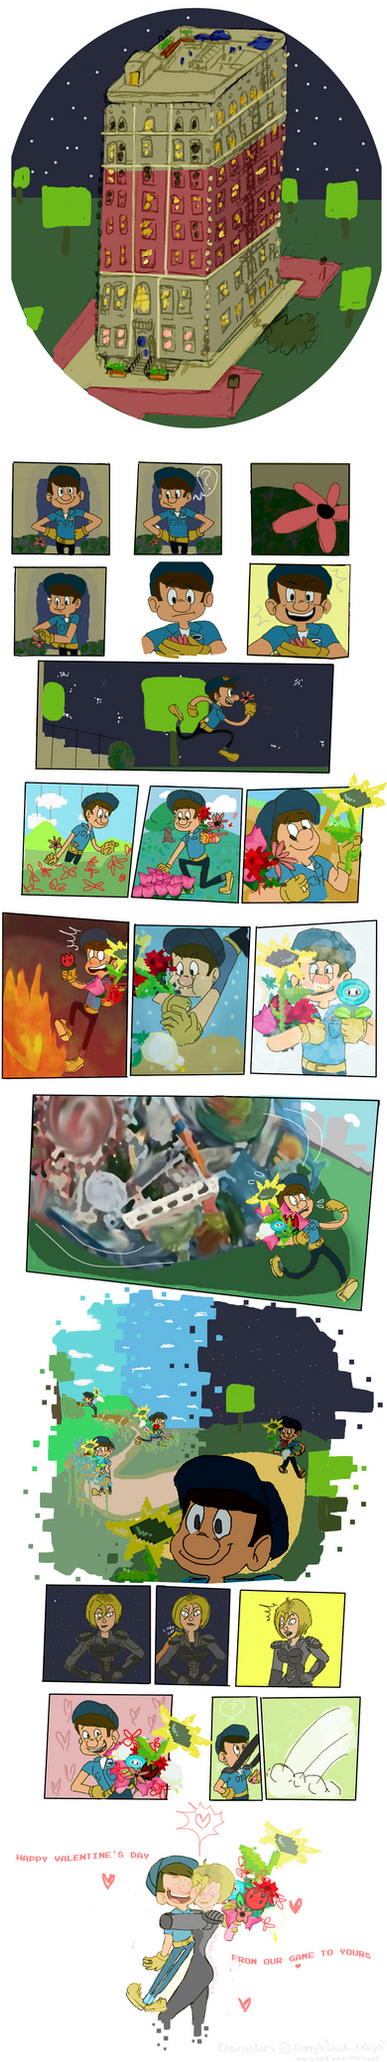 Game Jumped Bouquets by SparkleNaut